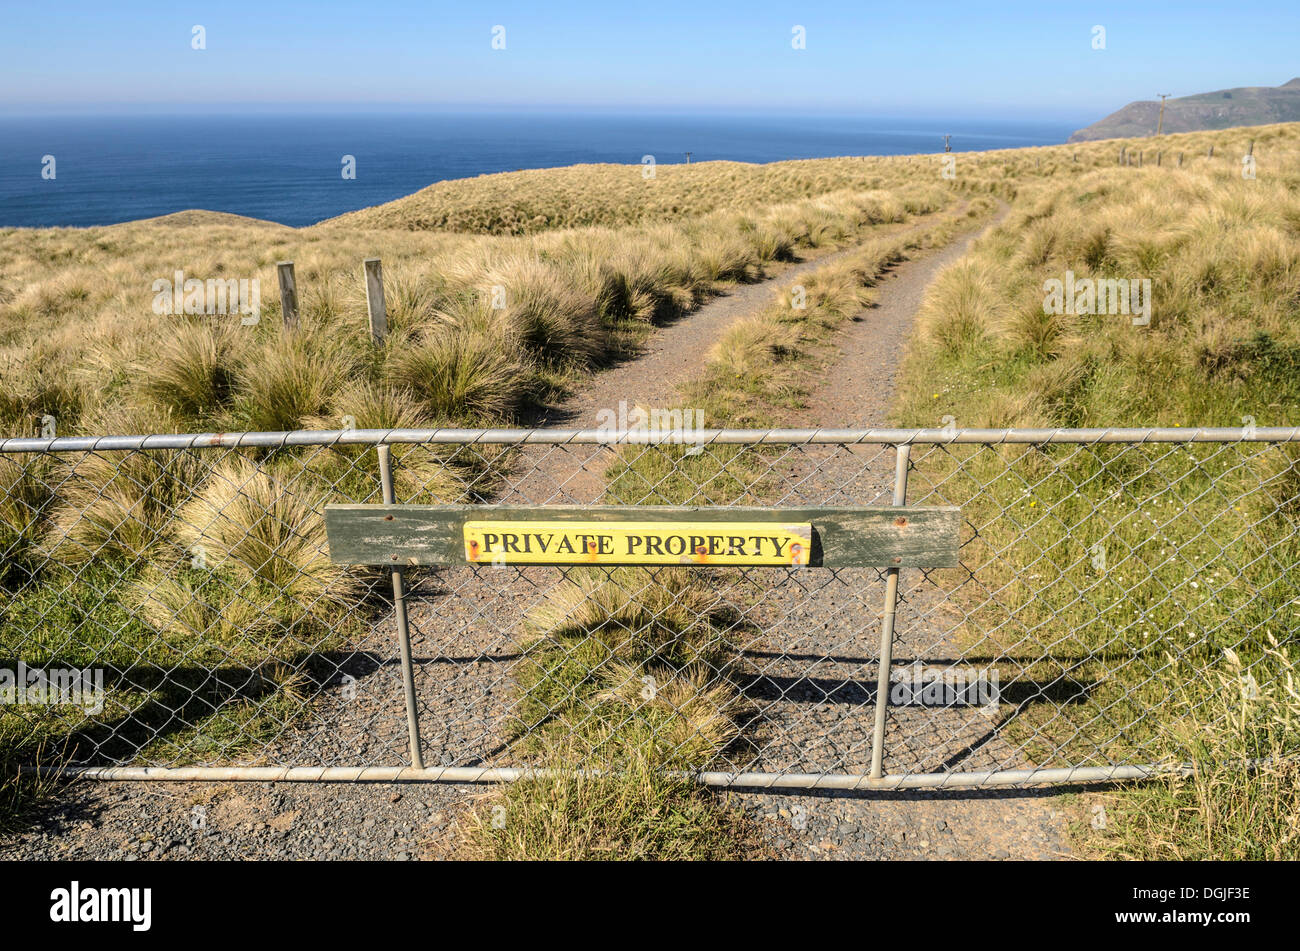 Gate with a sign, Private Property, Otago, South Island, New Zealand, Oceania - Stock Image